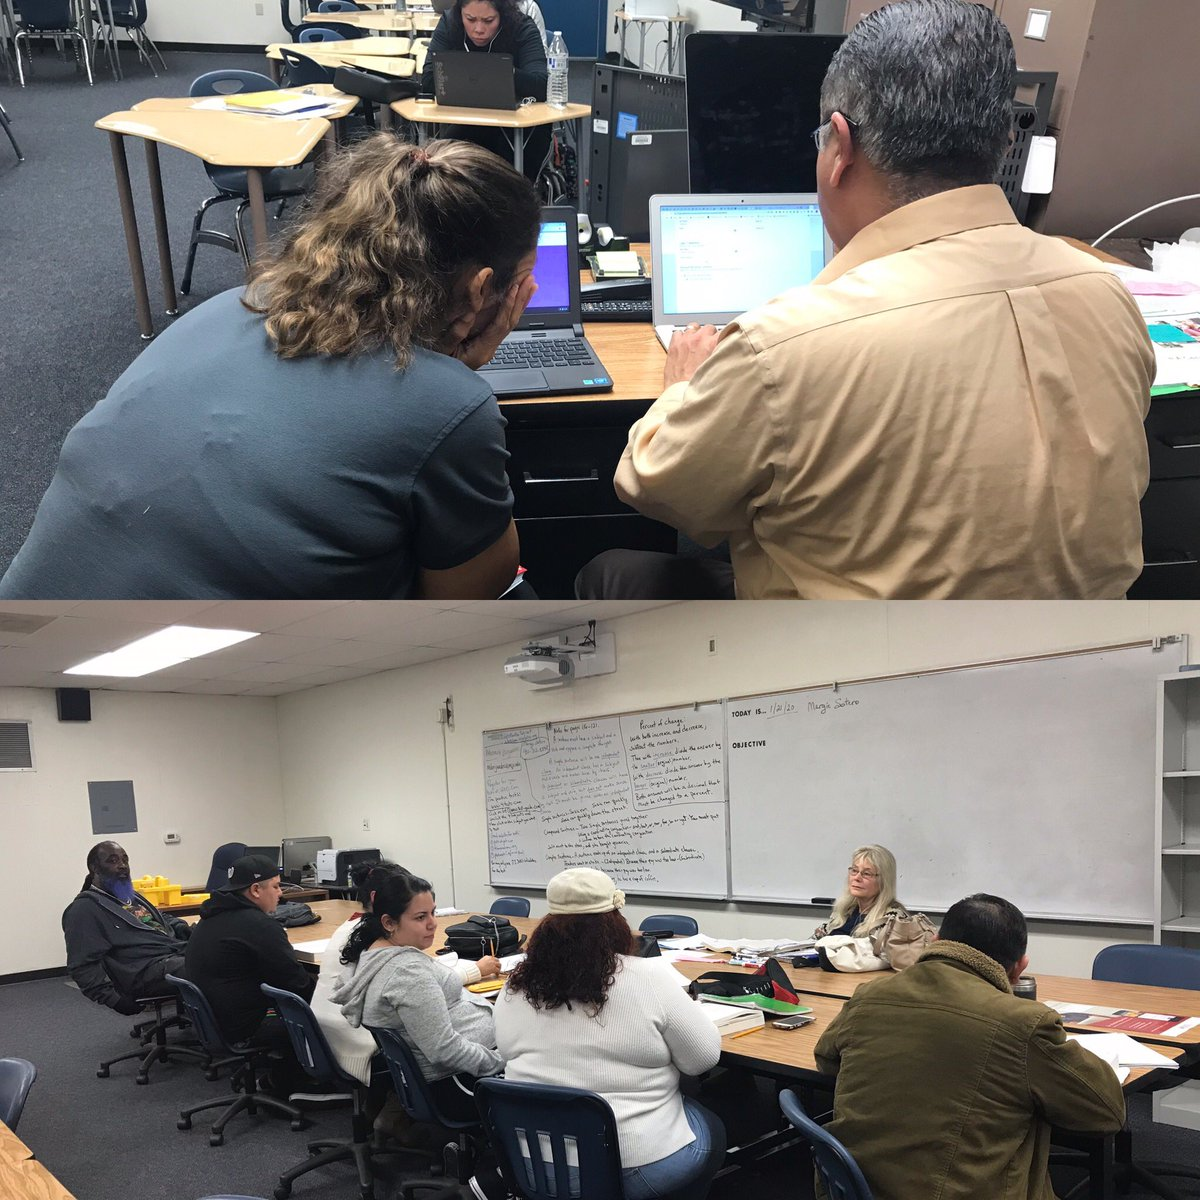 I'm so fortunate to have such amazing caring staff who go above and beyond to assist our adult learners. Thank you Mr. Sergio Salcedo and Marjorie Sotero for you passion and dedication to our students, school, and community.